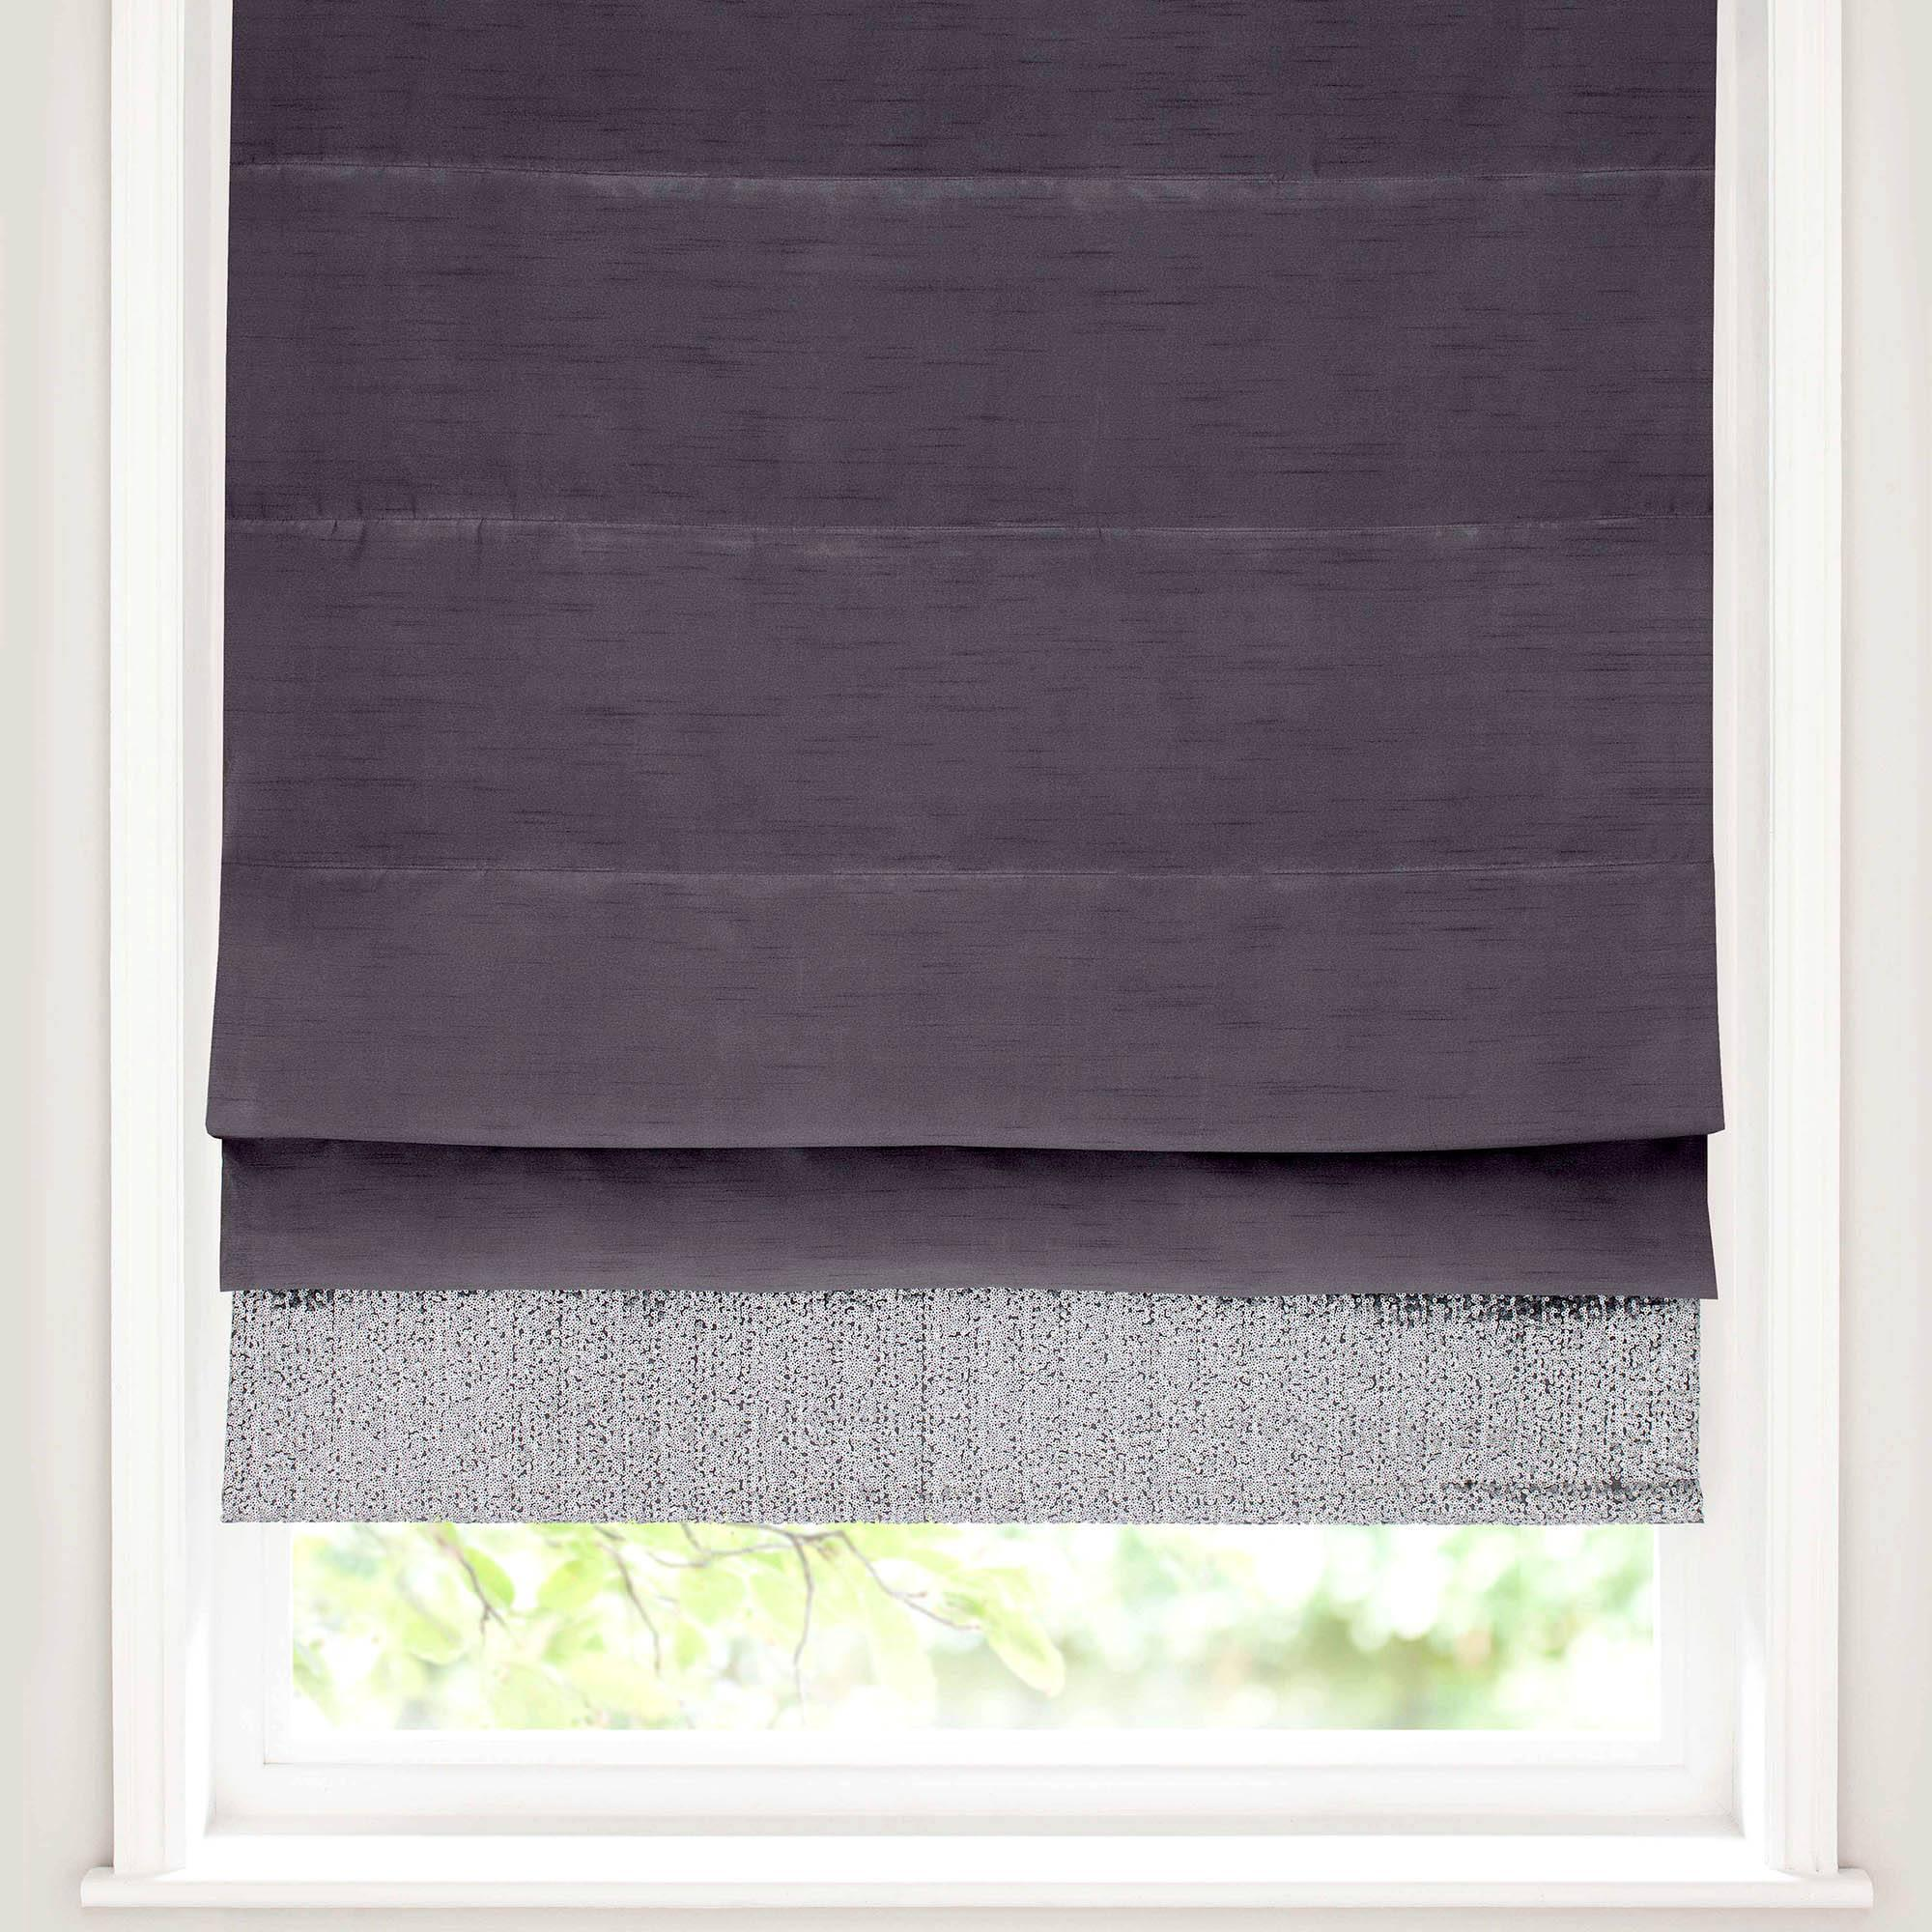 Make it Darker with Black out Roman Blinds